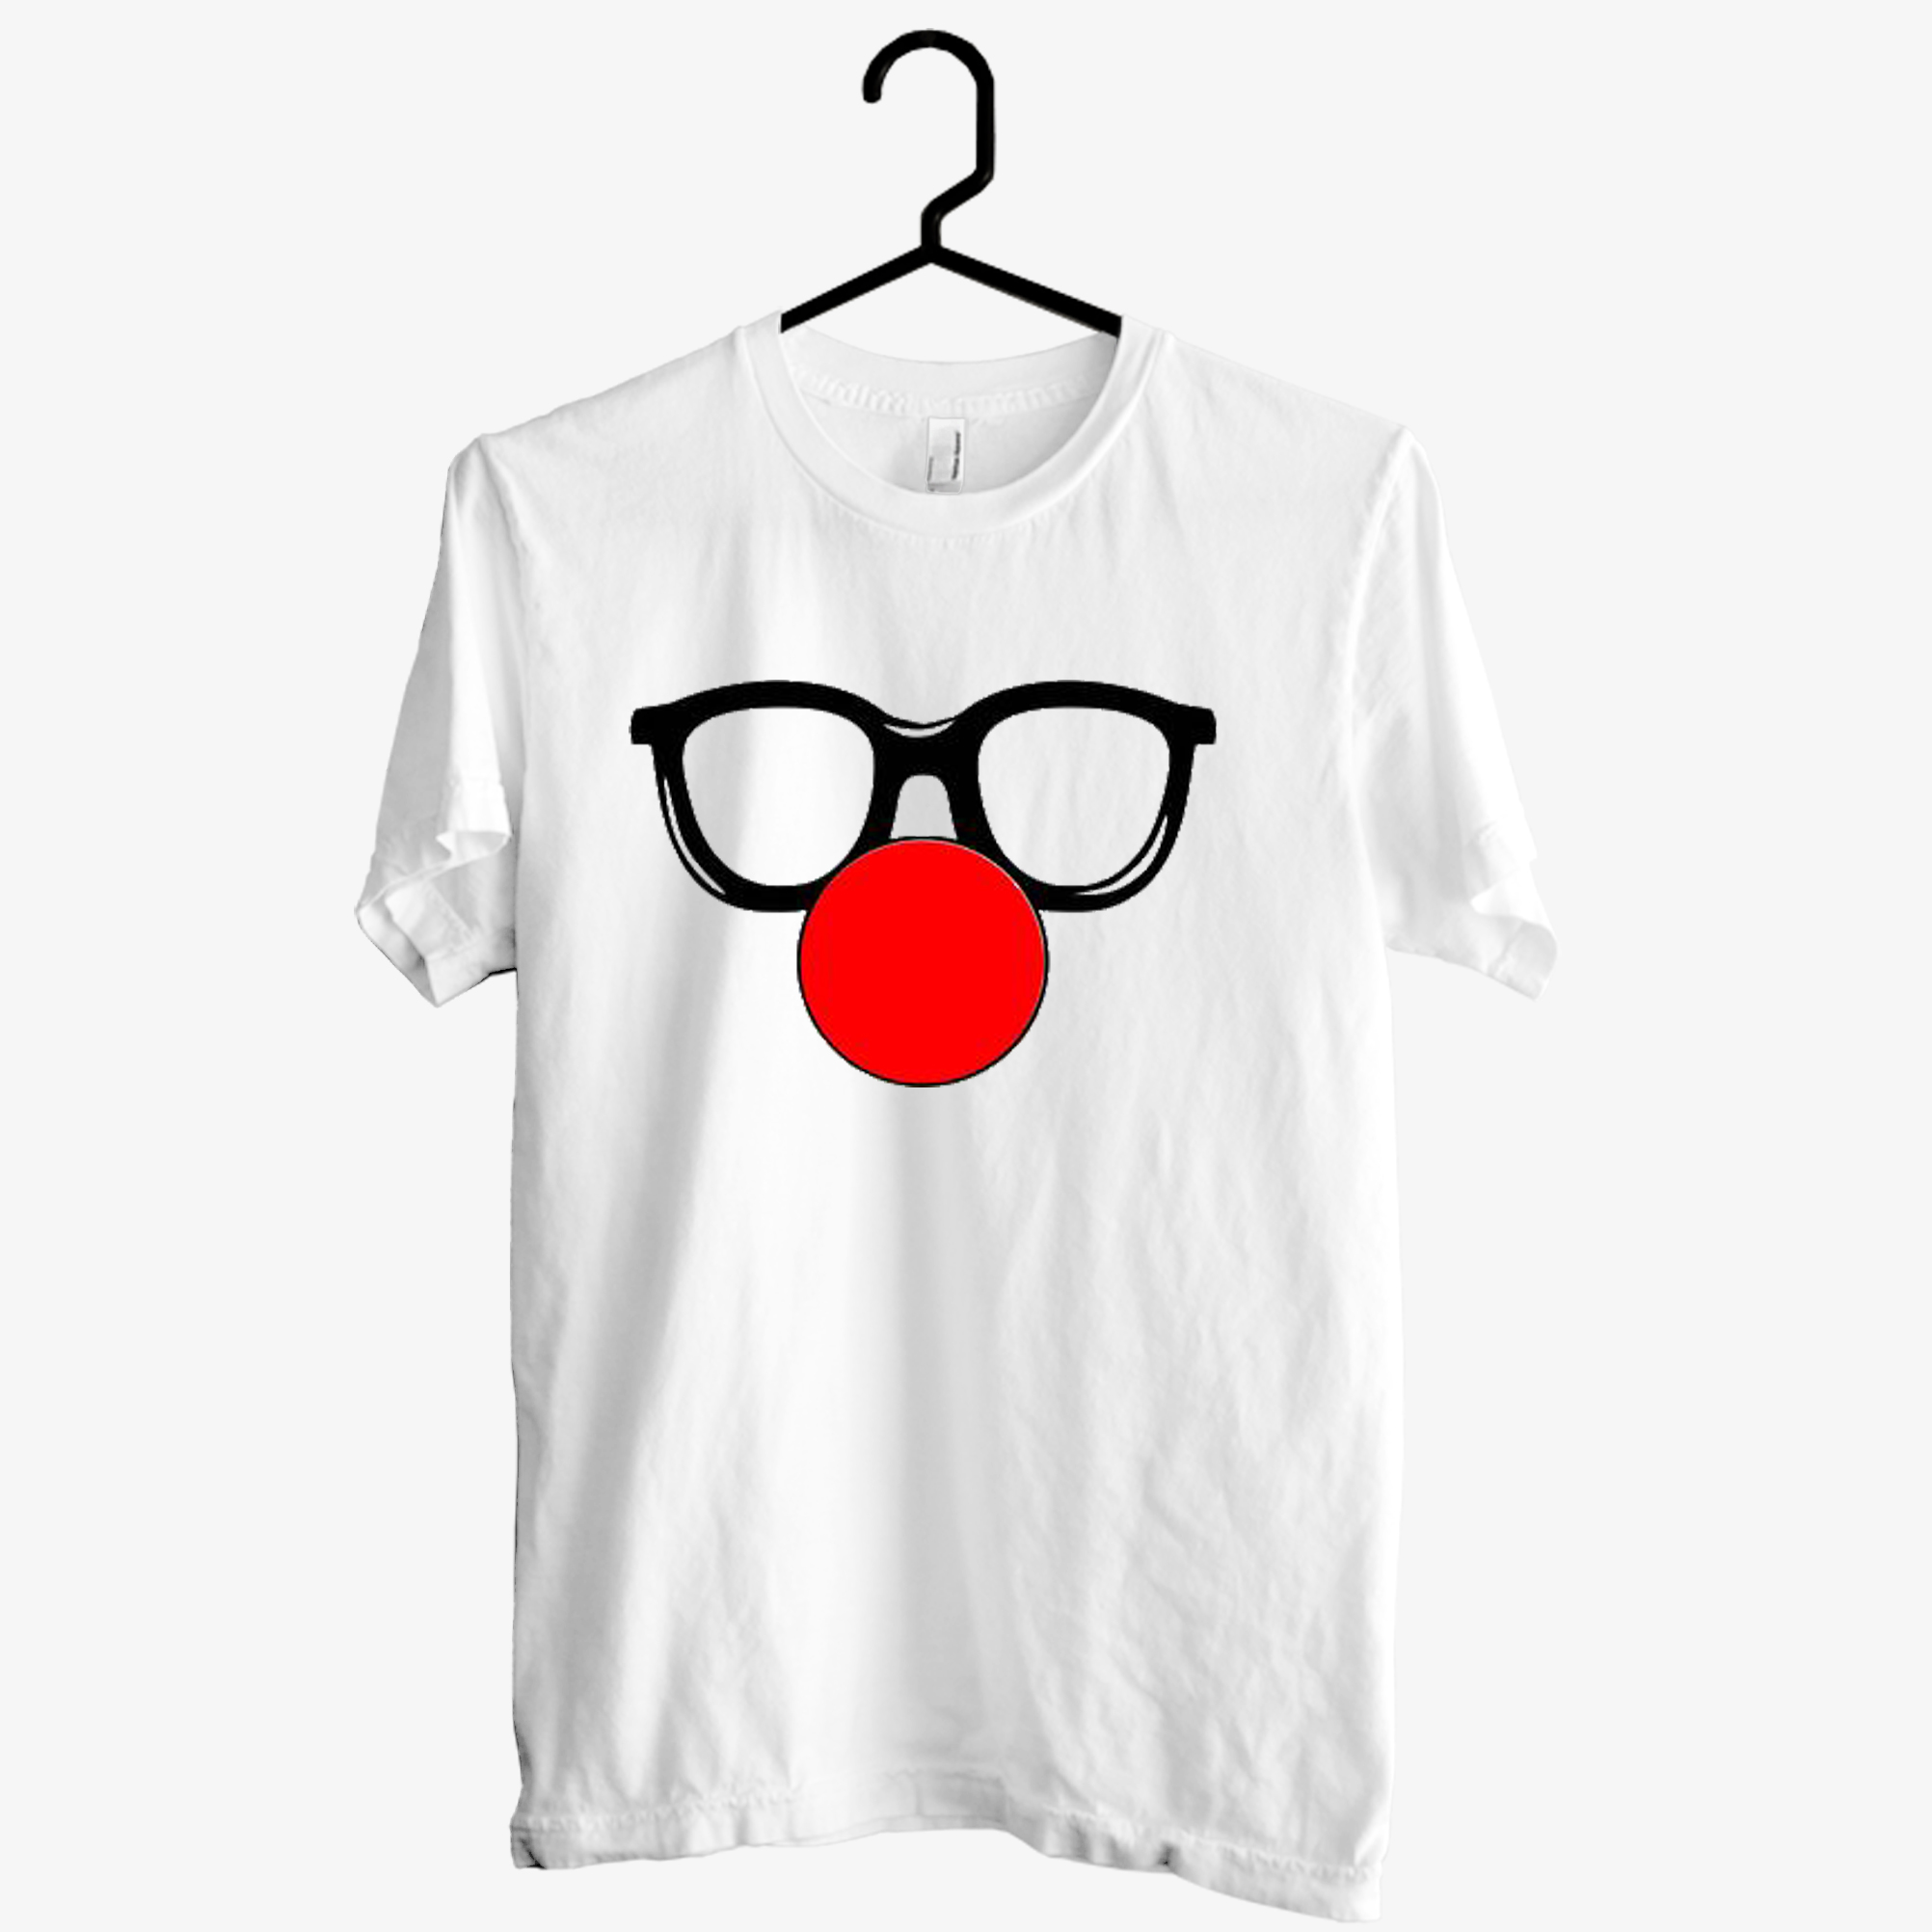 Clown Glasses T shirt